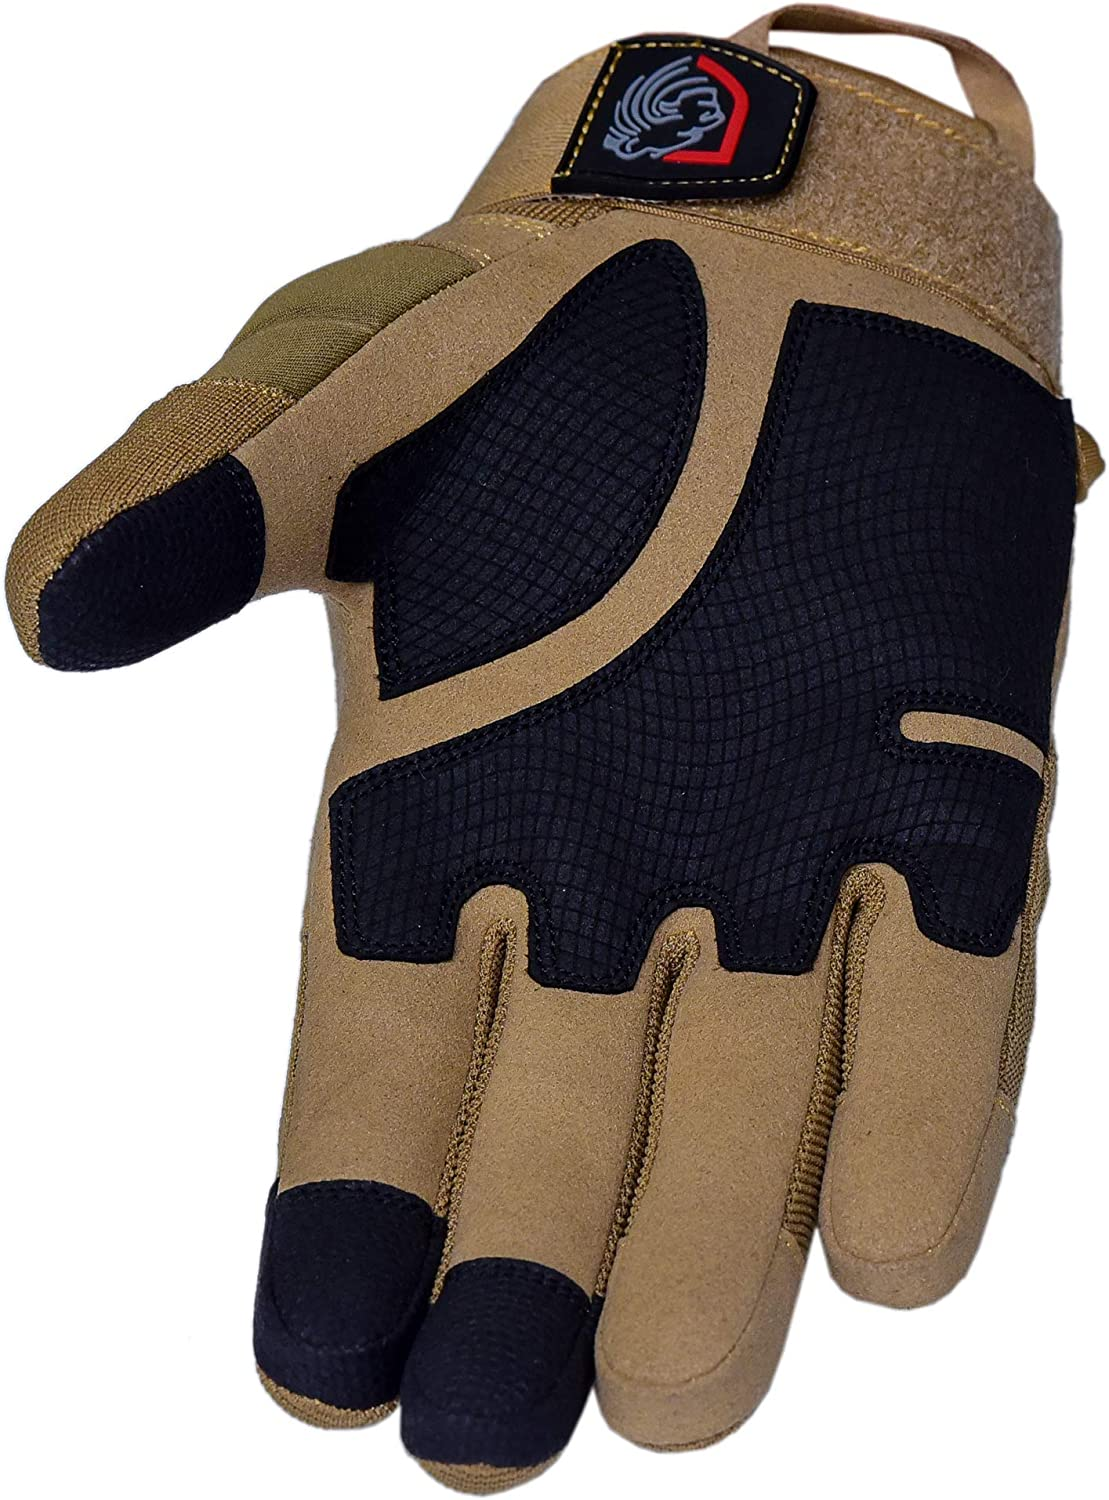 Riparo Tactical Touchscreen Gloves Military Shooting Hunting Rubber Outdoor Gloves (X-Large, Sand): Home Improvement